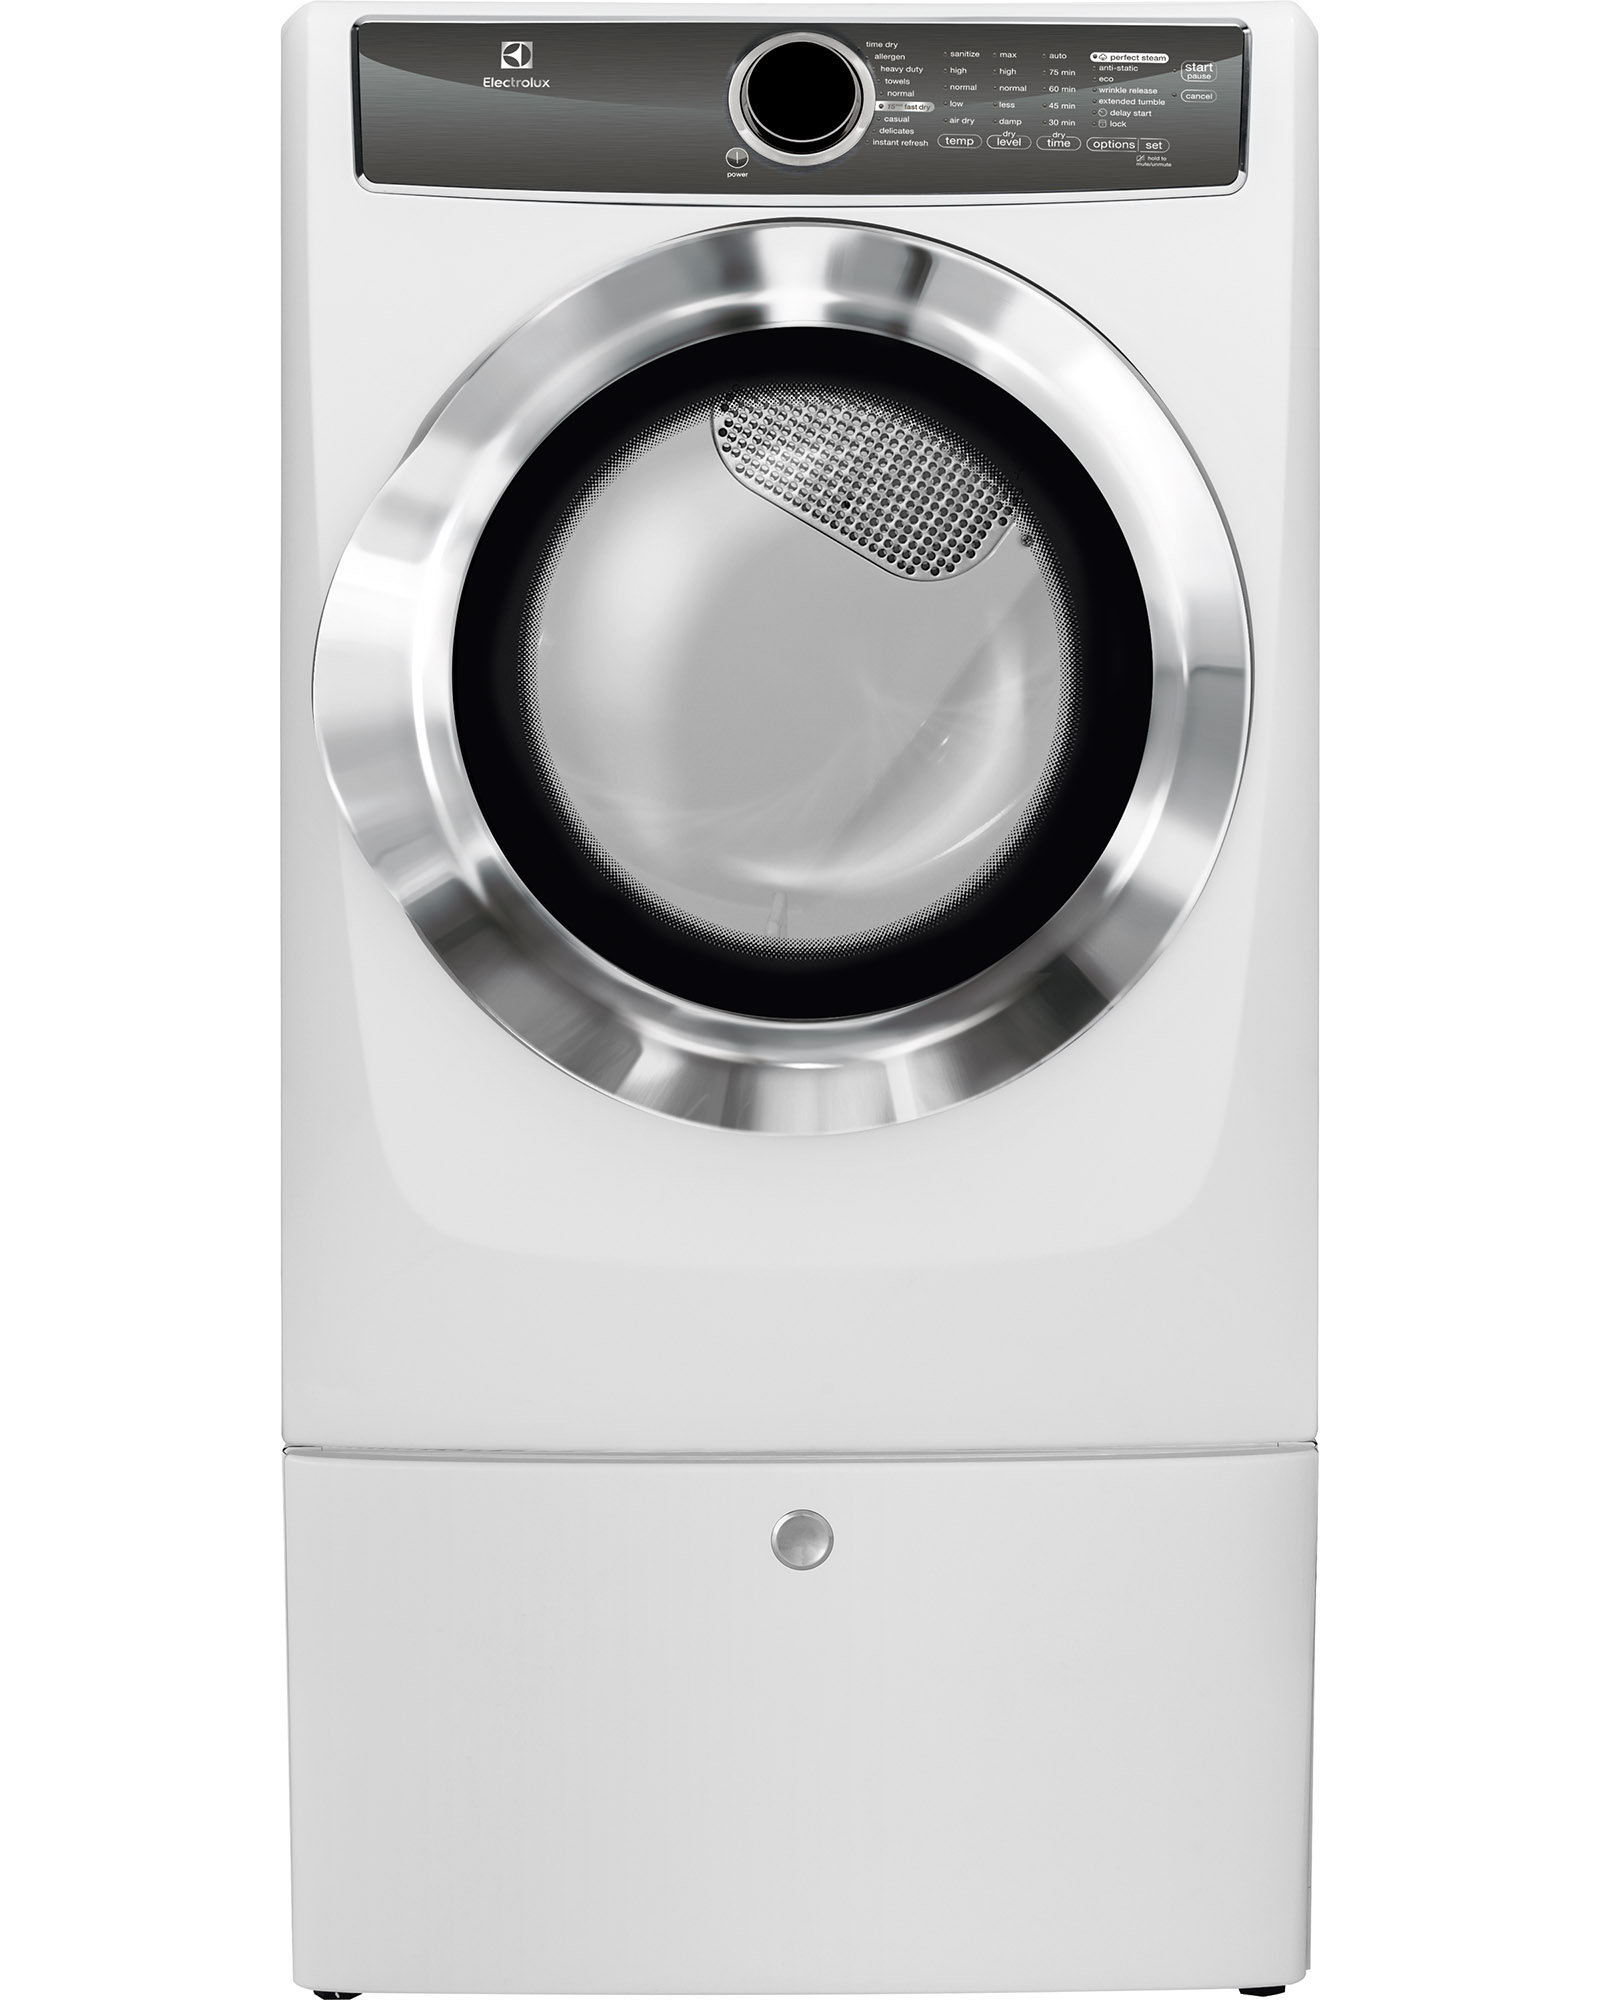 Electrolux EFME617SIW 8.0 cu. ft. Electric Dryer w/ Allergen Cycle - White